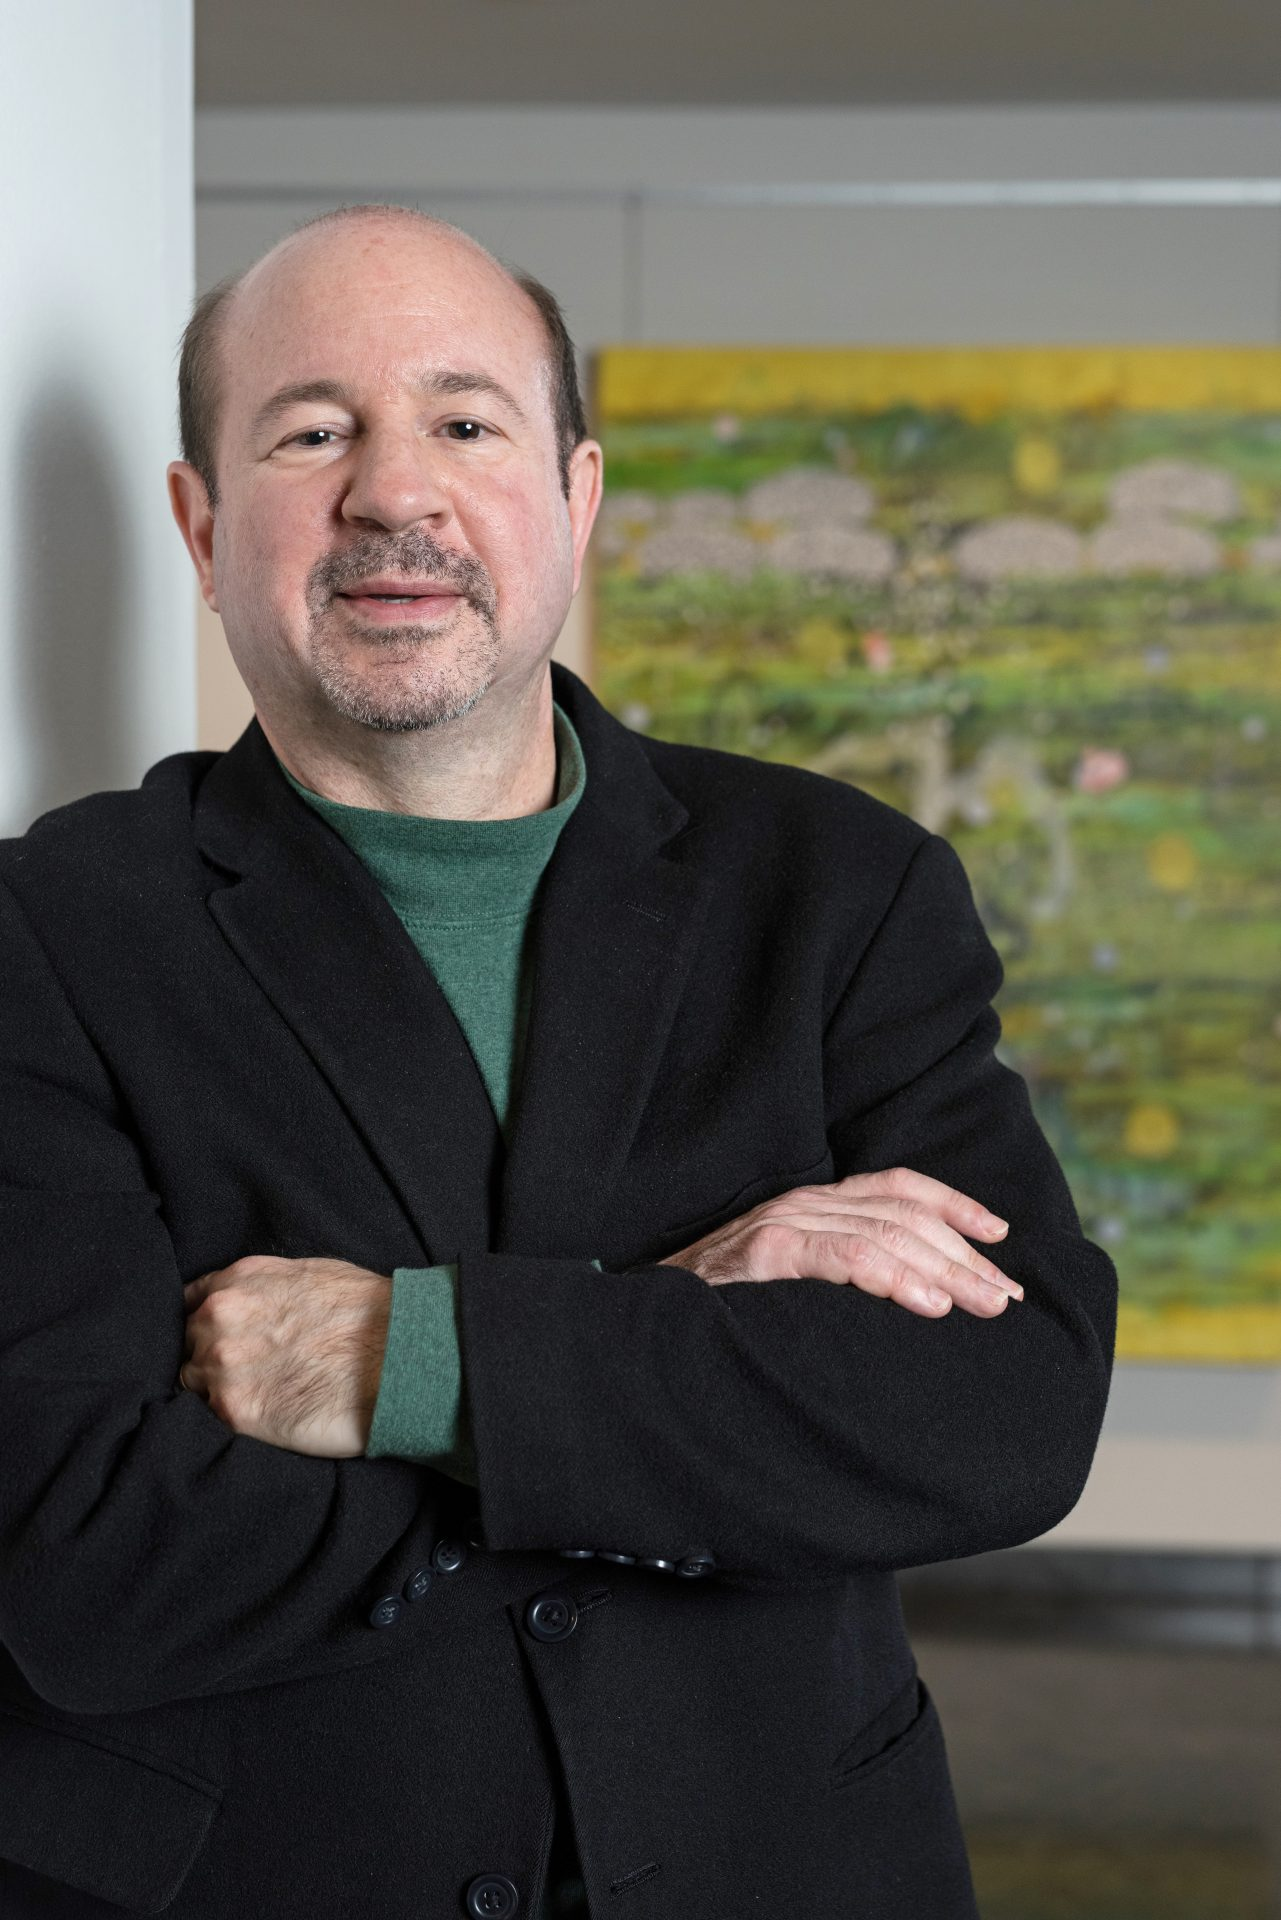 Michael Mann, professor of atmospheric science at Penn State